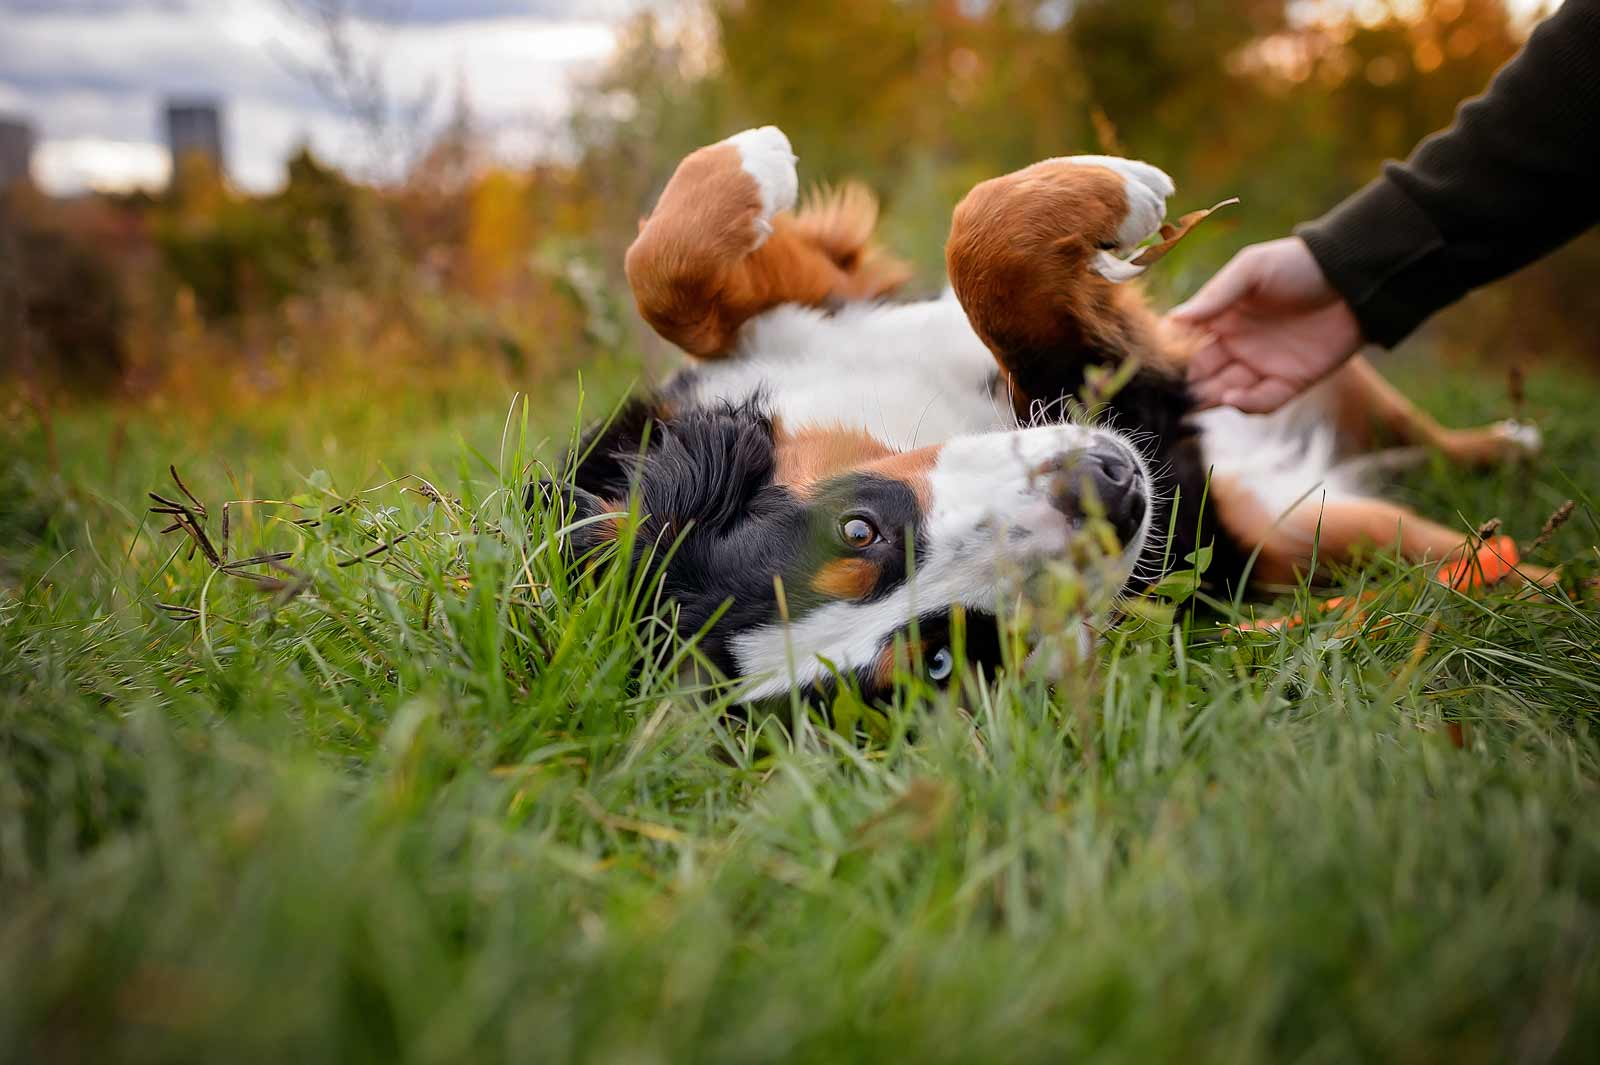 Ottawa Dog Photographer Princess Leia the Bernese mountain dog at Lemieux Island in the fall laying on her back getting a belly rub